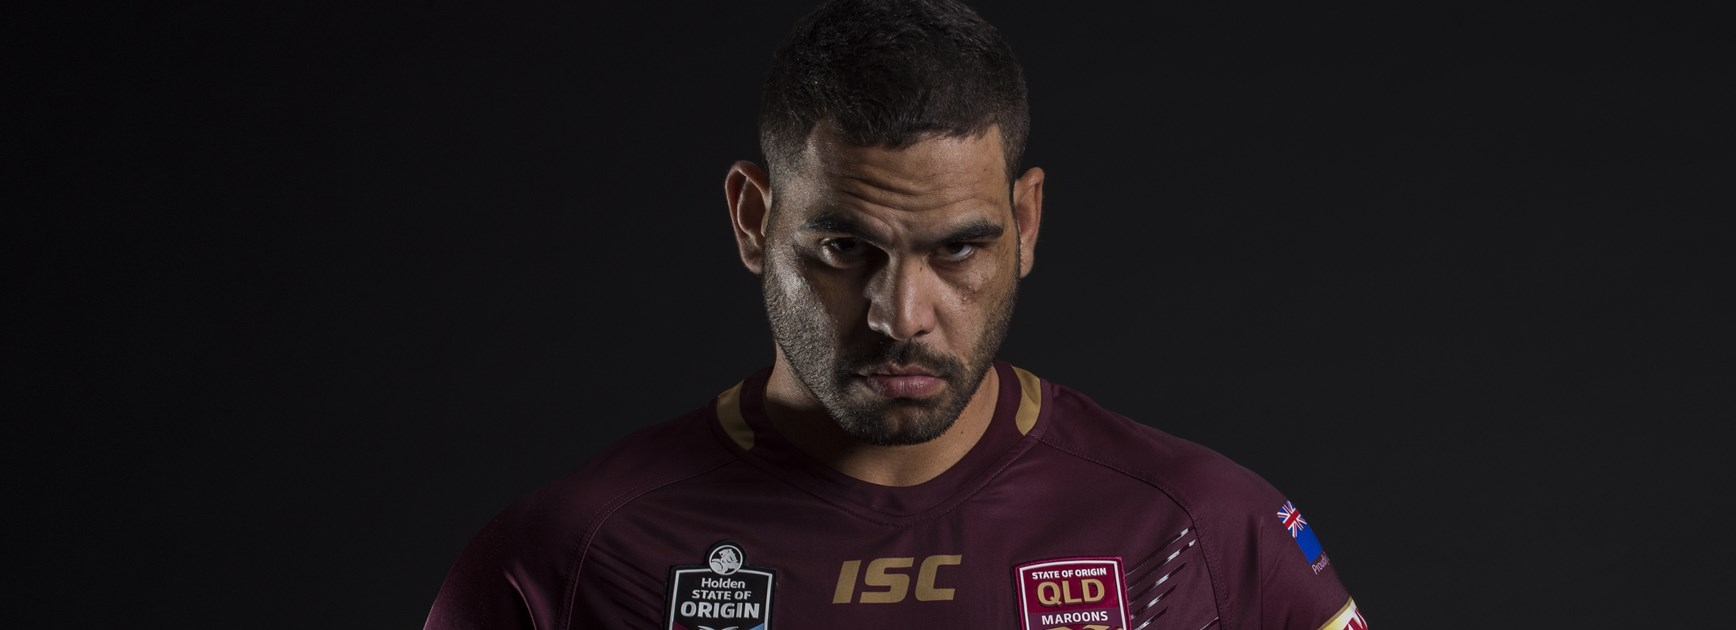 On This Day: Inglis was announced Queensland Captain